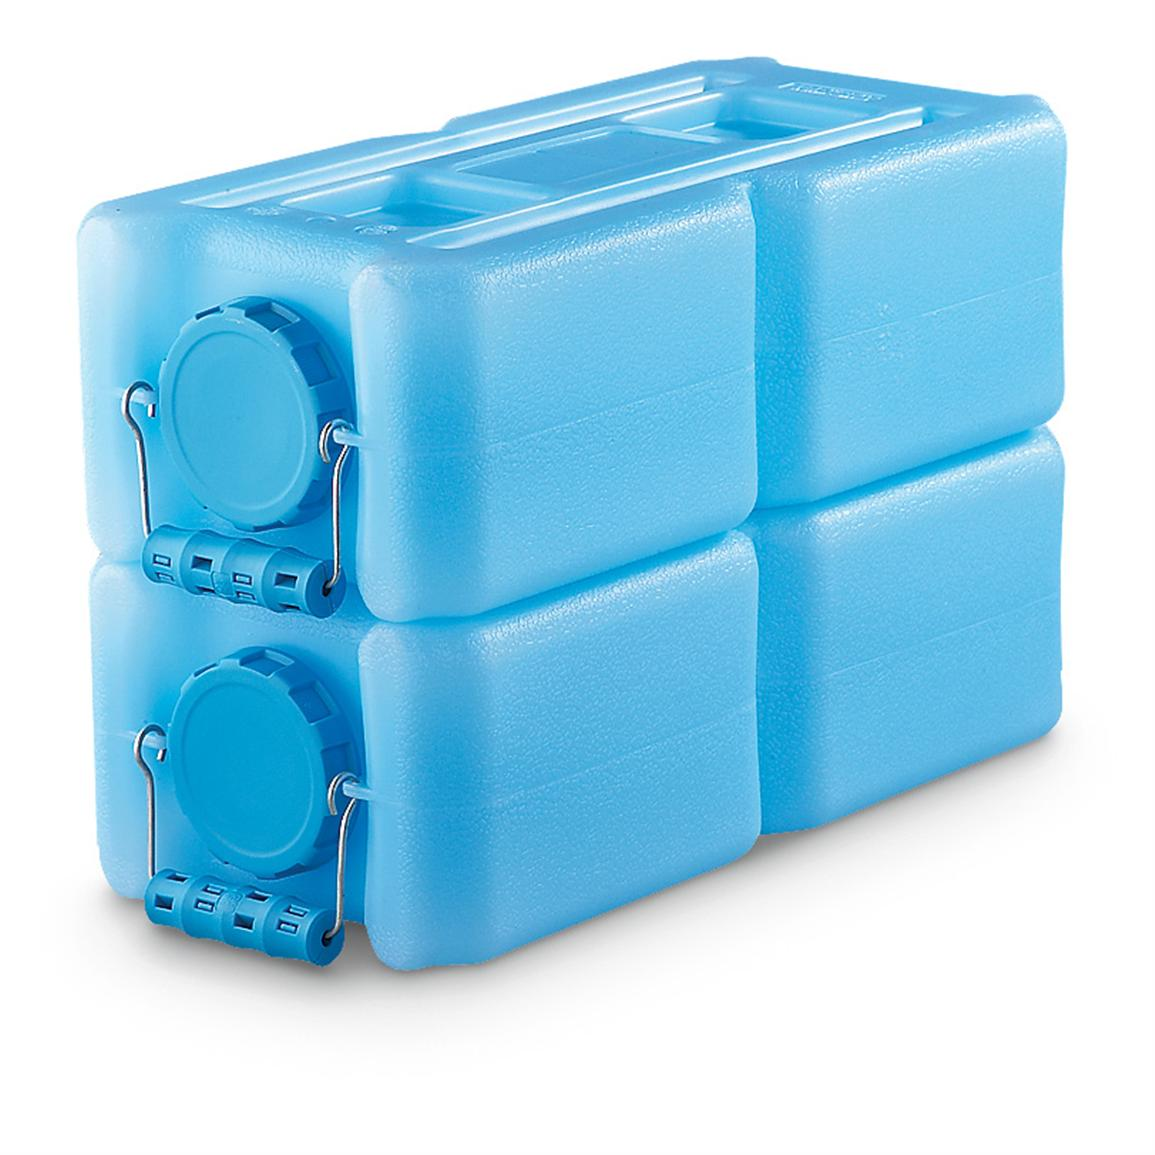 WaterBrick Stackable Water Storage Container, 3.5 Gallon , Blue